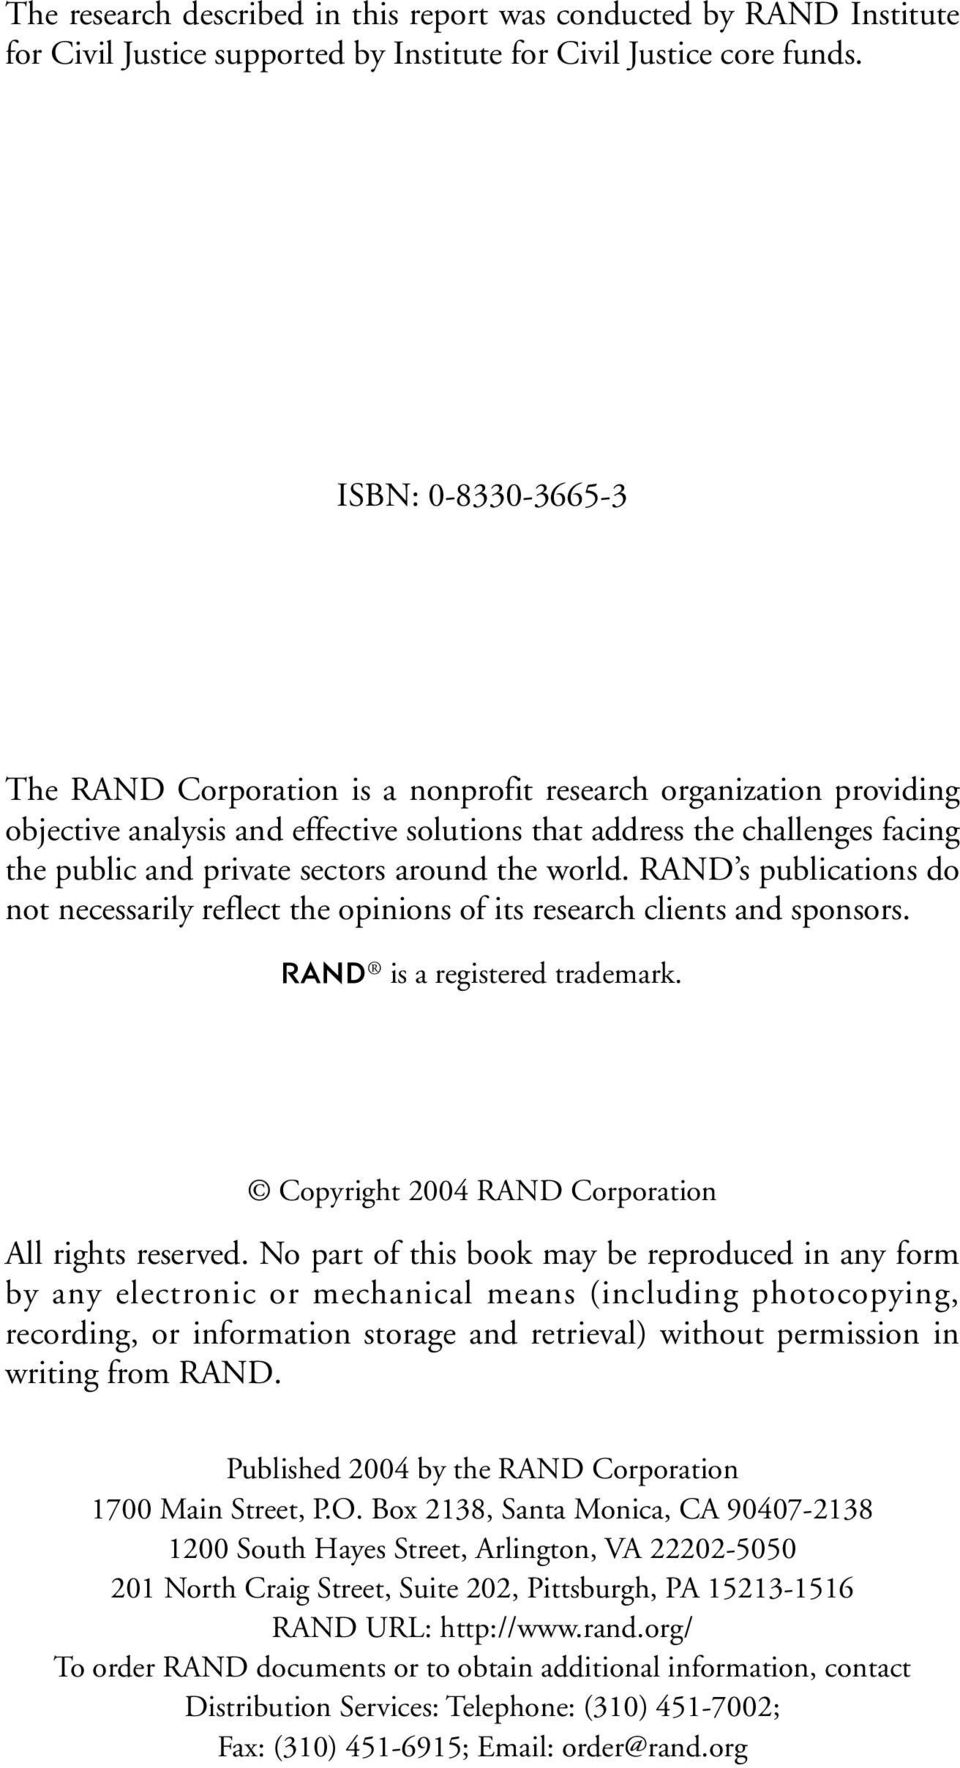 around the world. RAND s publications do not necessarily reflect the opinions of its research clients and sponsors. R is a registered trademark. Copyright 2004 RAND Corporation All rights reserved.